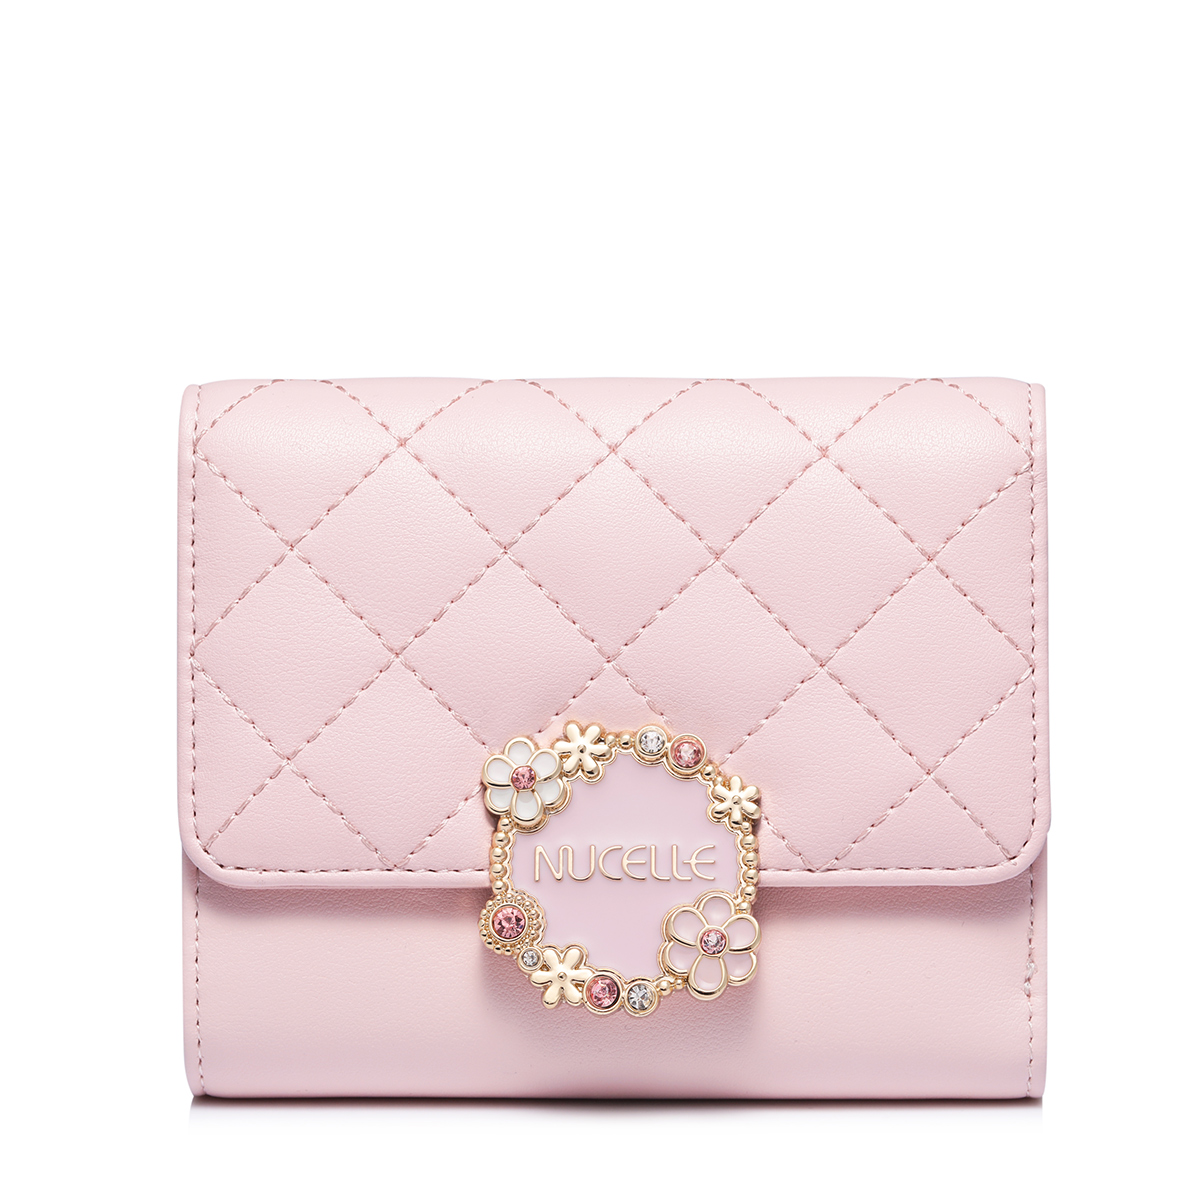 NUCELLE 2018 New Season Elegant Floral Short Wallet Pink